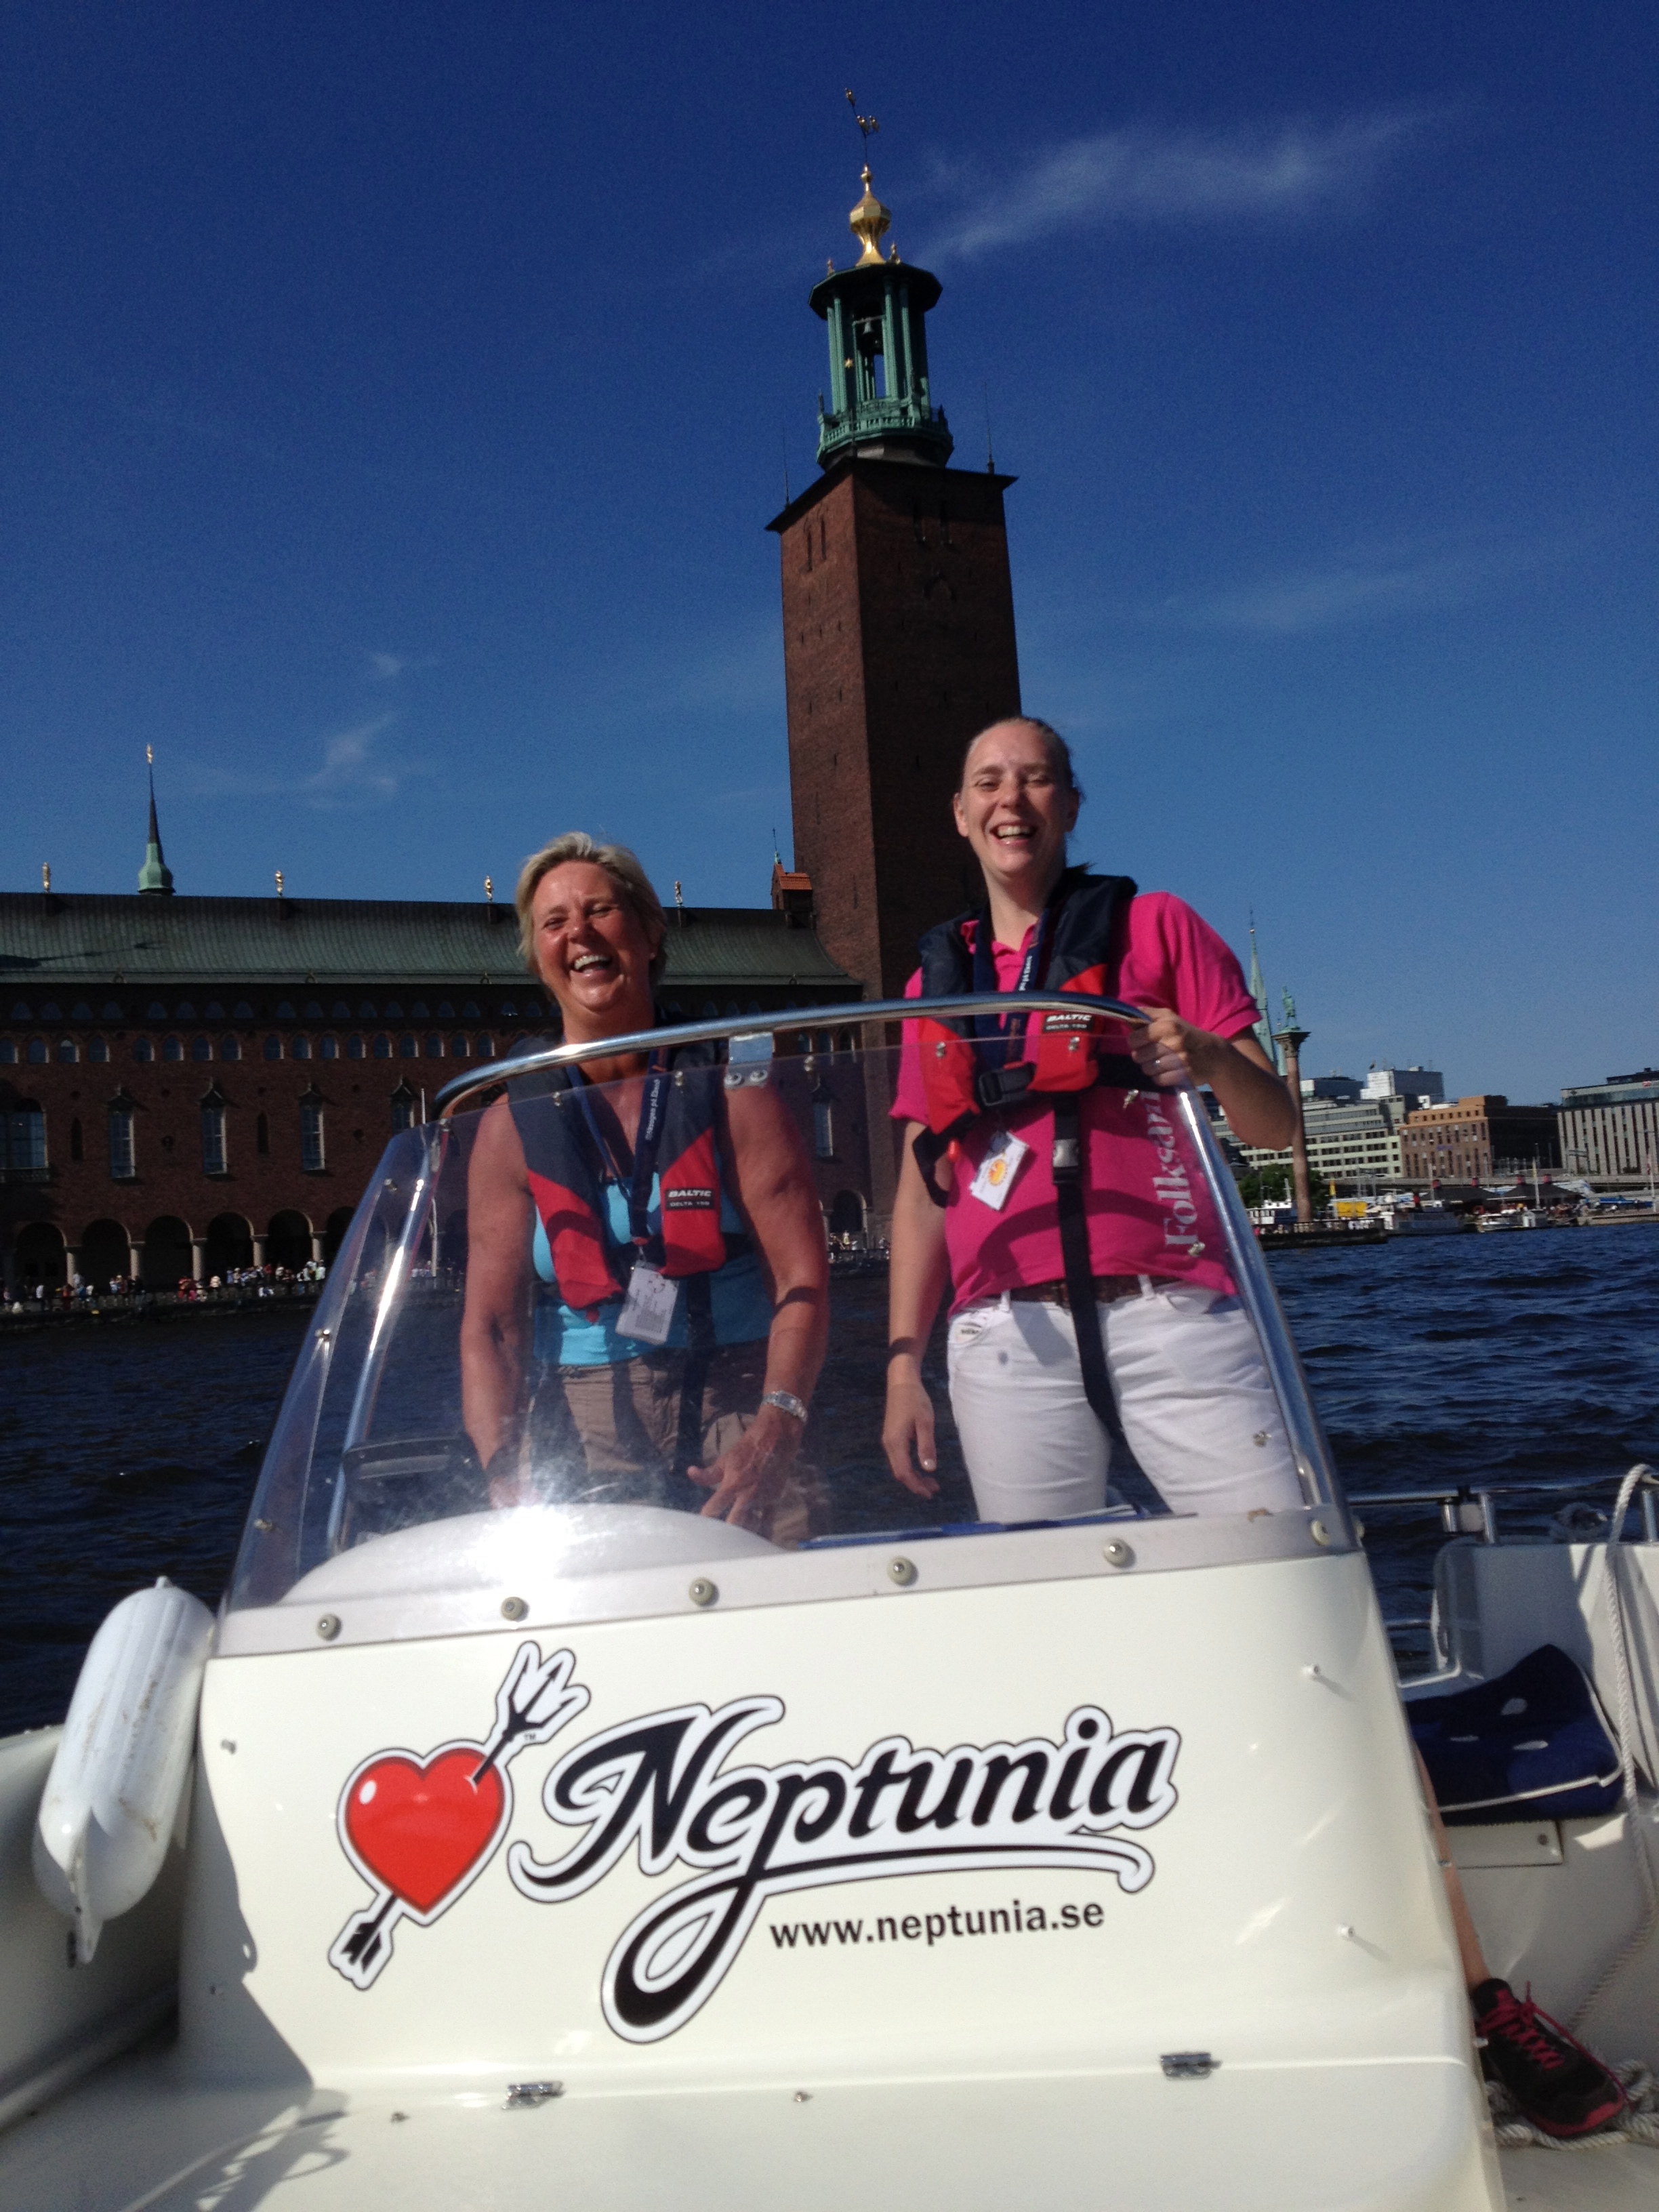 Mother Christina Schoug and daughter Katrin Blidell on Riddarfjärden by the City Hall in Stockholm City